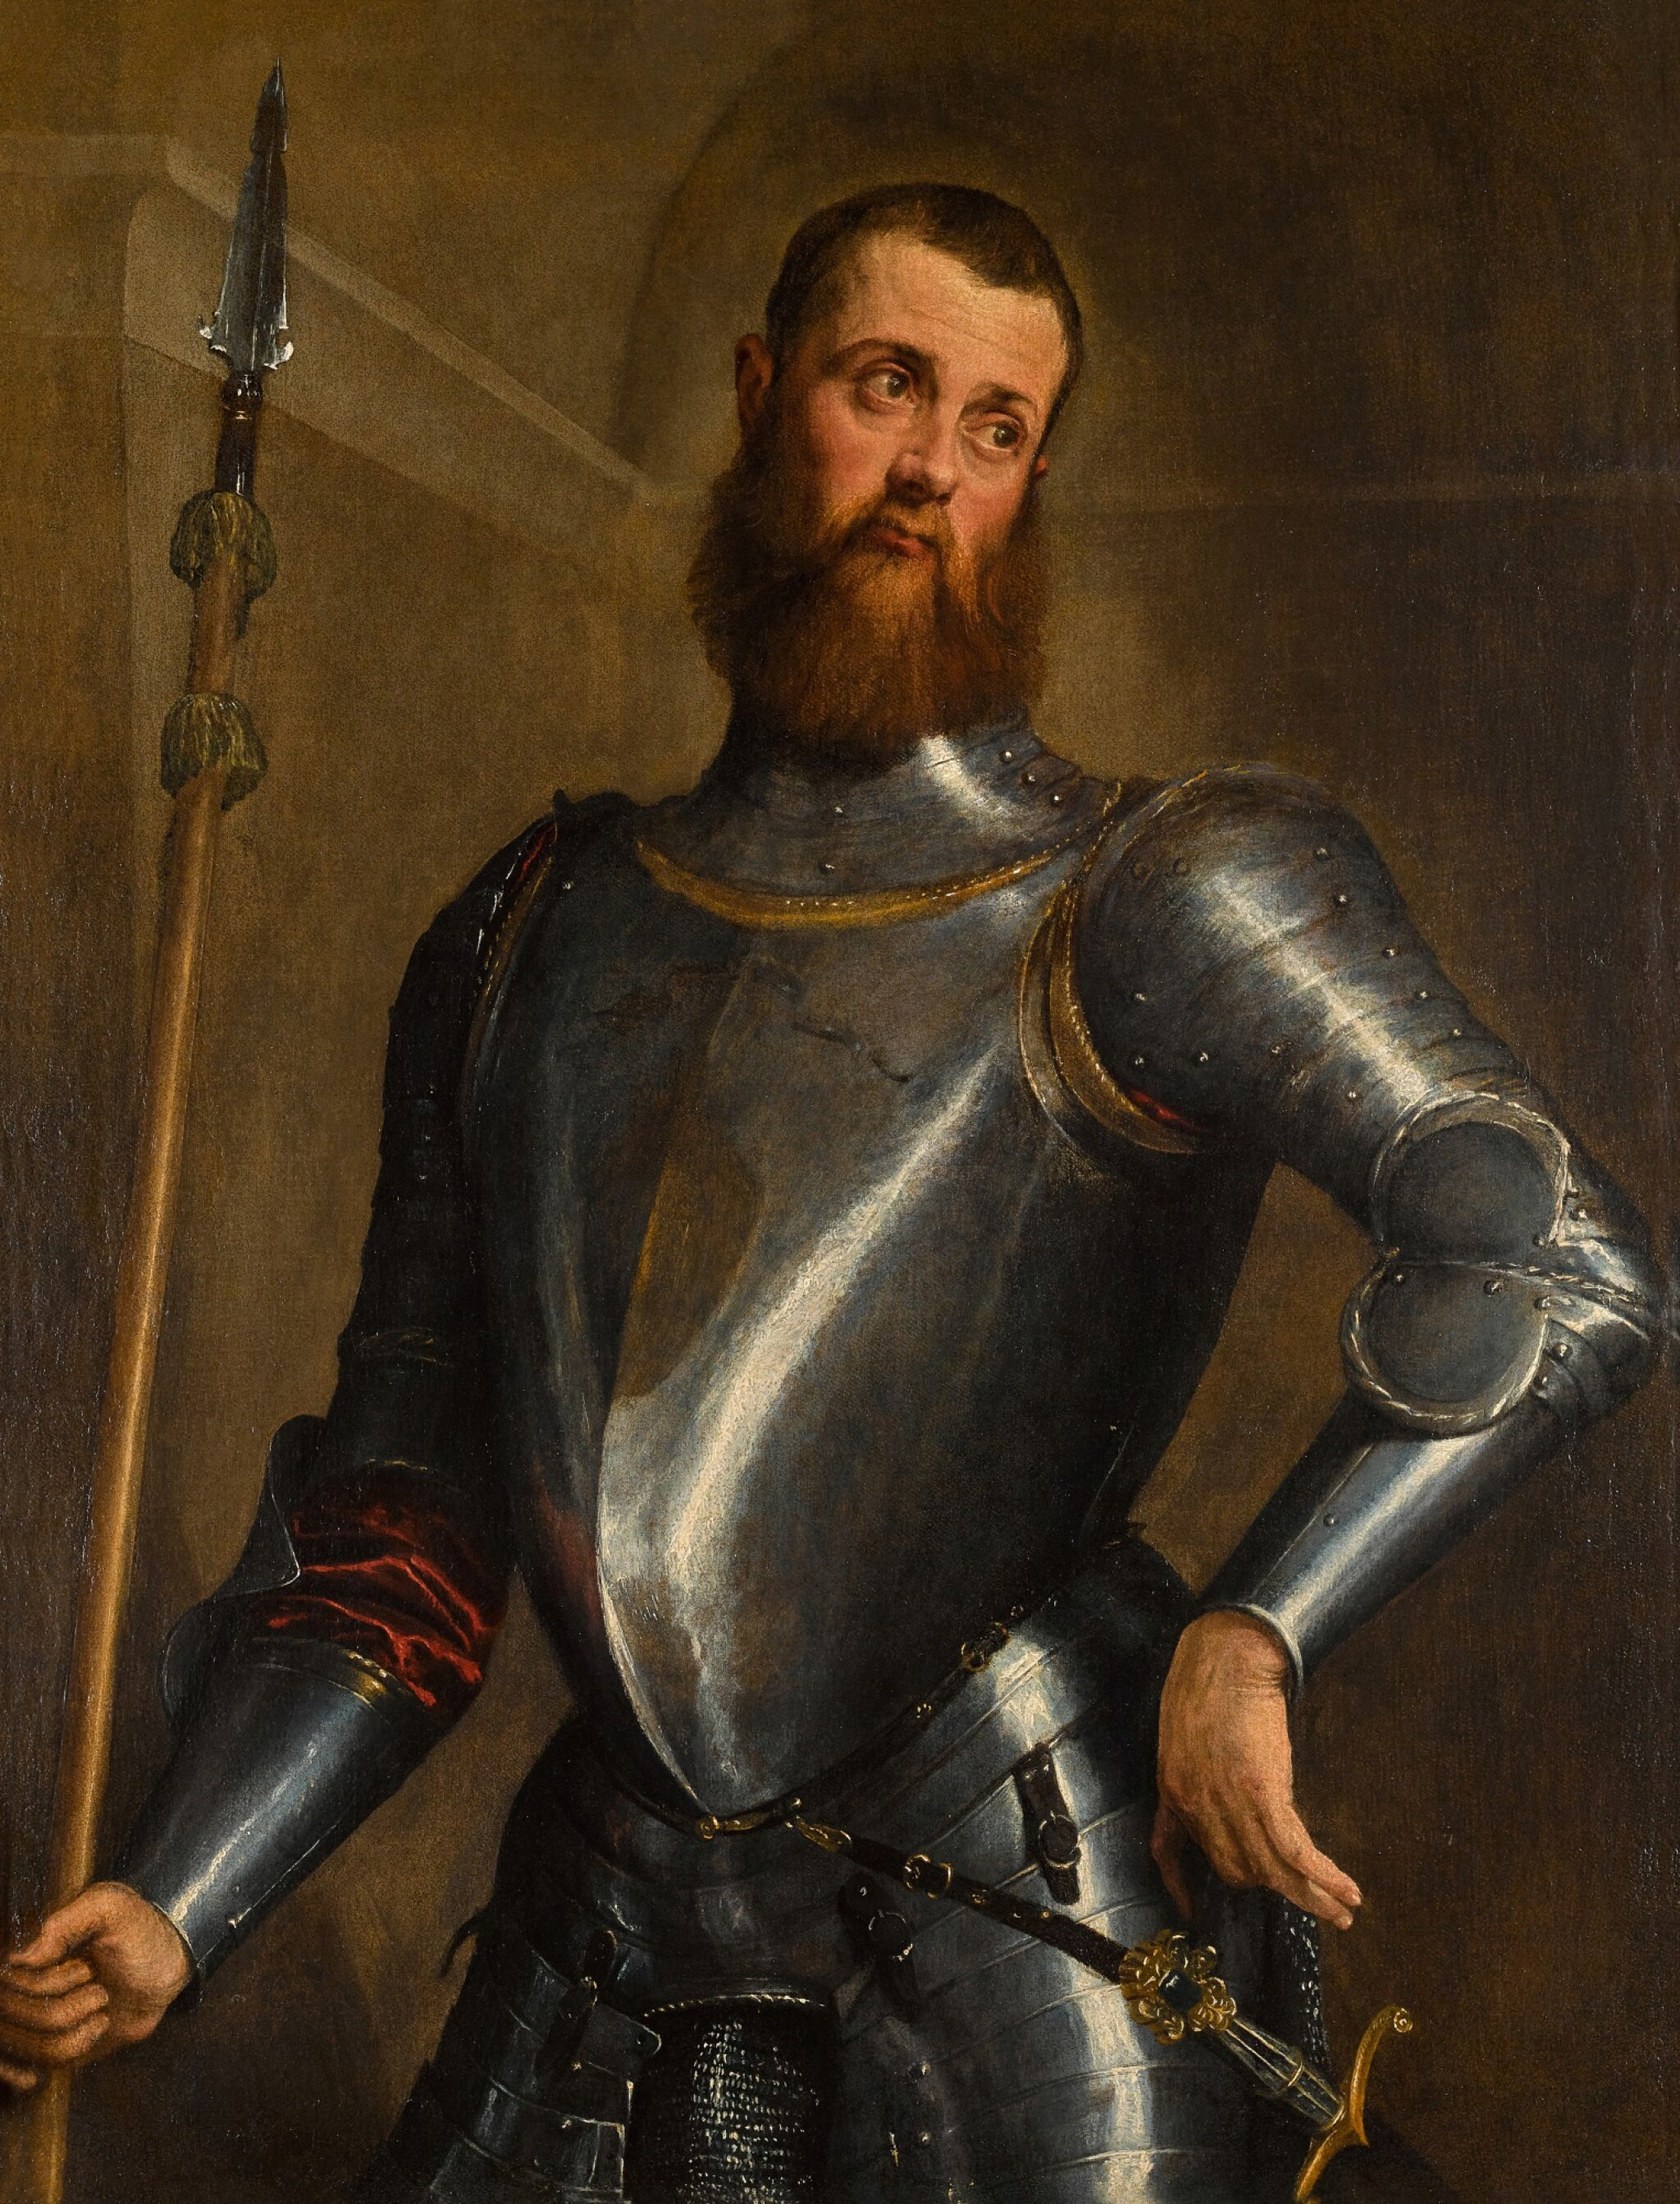 View full screen - View 1 of Lot 63. JACOPO DA PONTE, CALLED JACOPO BASSANO  |  PORTRAIT OF A MILITARY COMMANDER IN ARMOUR, THREE-QUARTER LENGTH, WEARING A BROADSWORD AND HOLDING A PARTIGIANA.